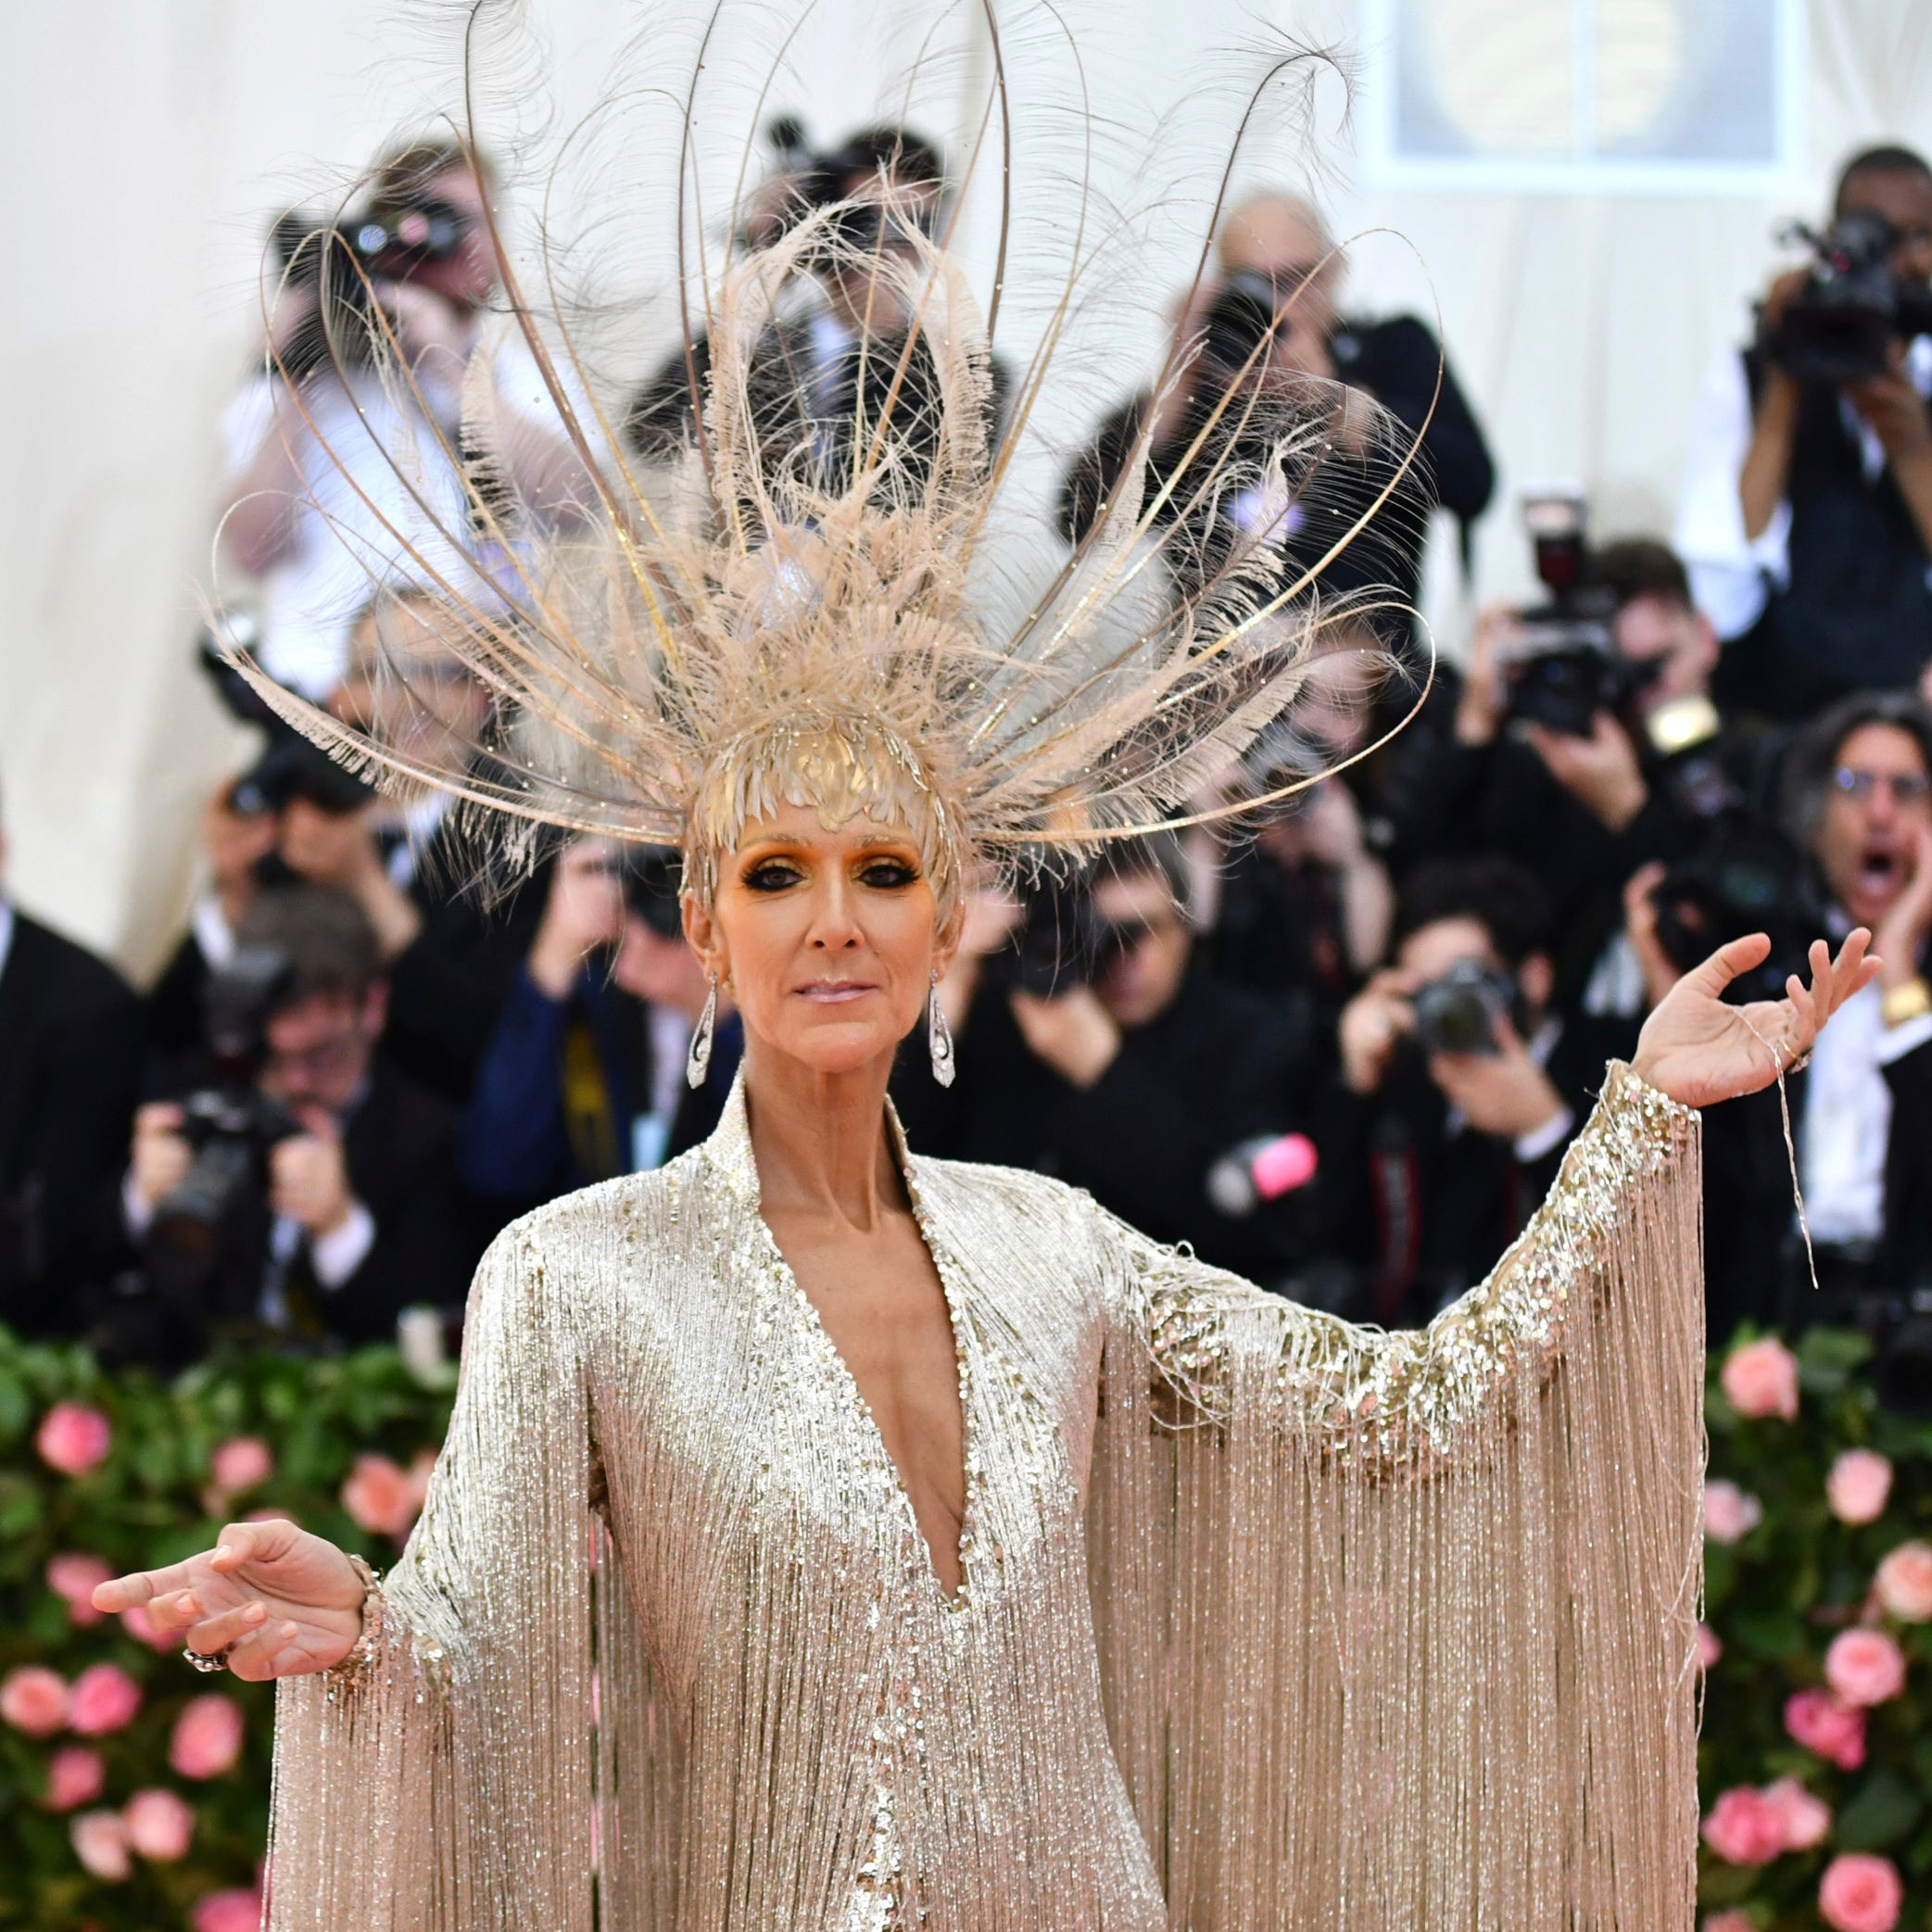 Behold, Celine Dion at the 2019 Met Gala.